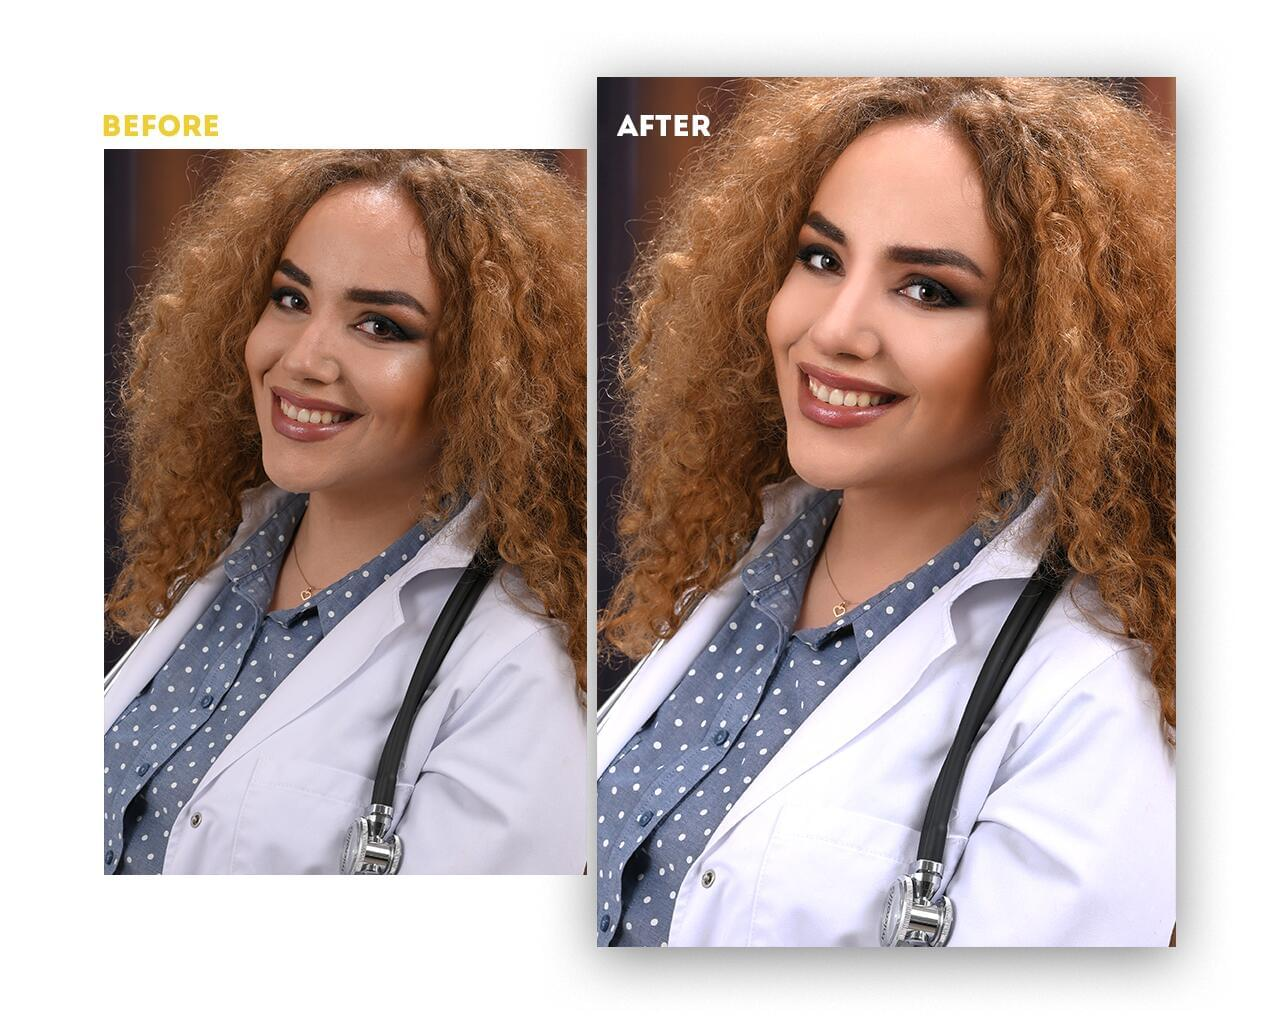 Professional Portrait Photo Retouching by artnook - 117907